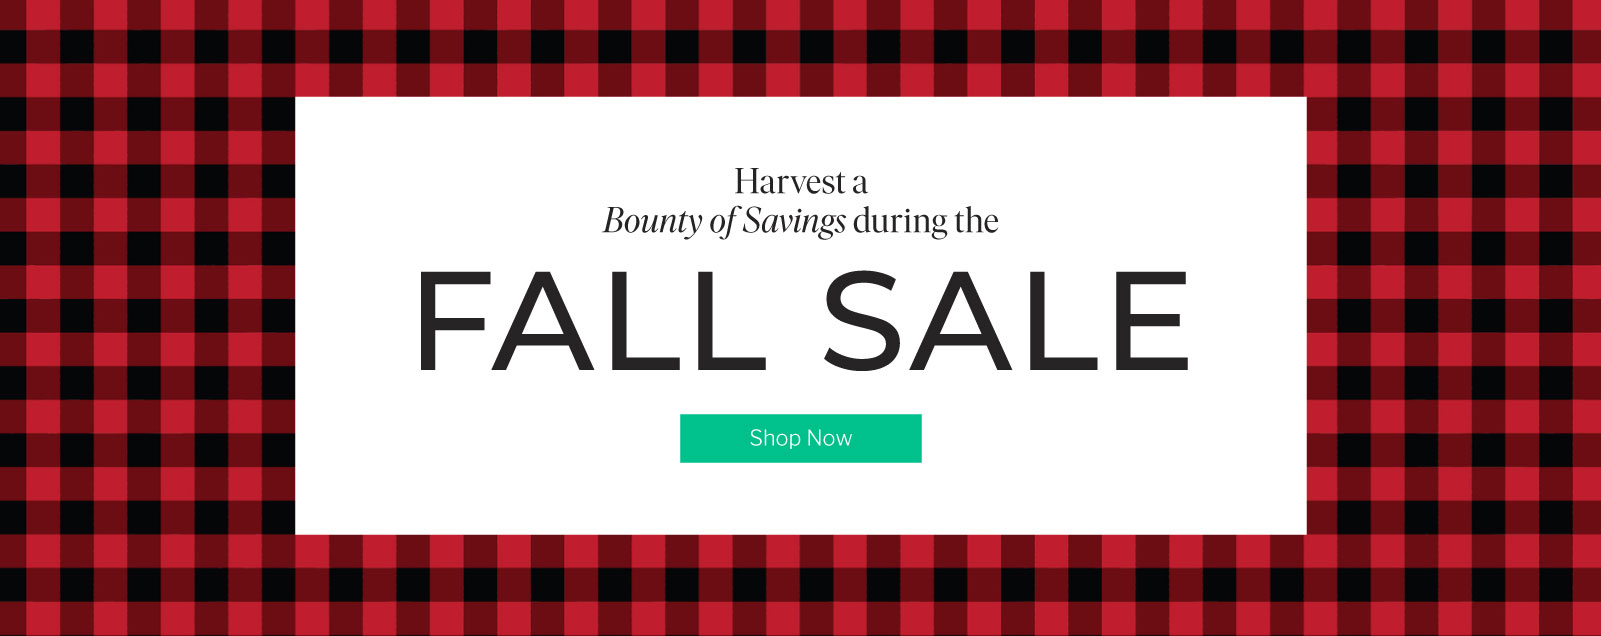 Harvest a Bounty of Savings during the Fall Sale - Shop Now